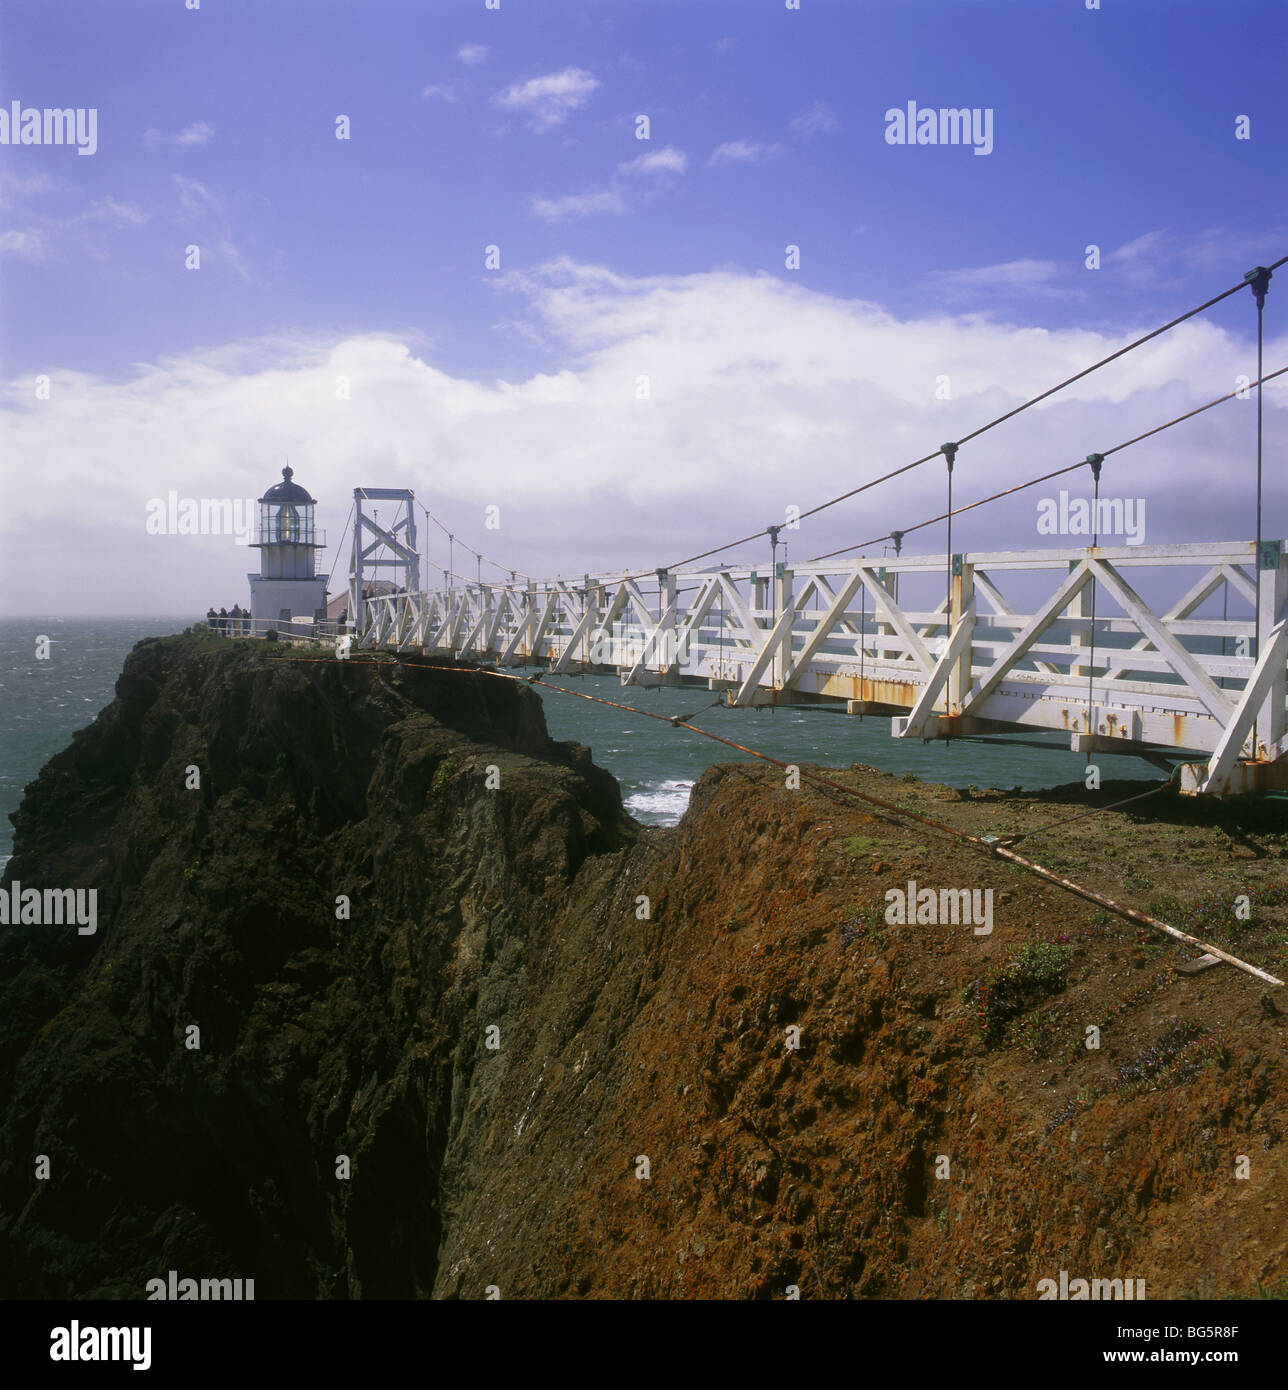 CALIFORNIA - puente que conduce al Faro de Punta Bonita en el Golden Gate National Recreation Area. Imagen De Stock